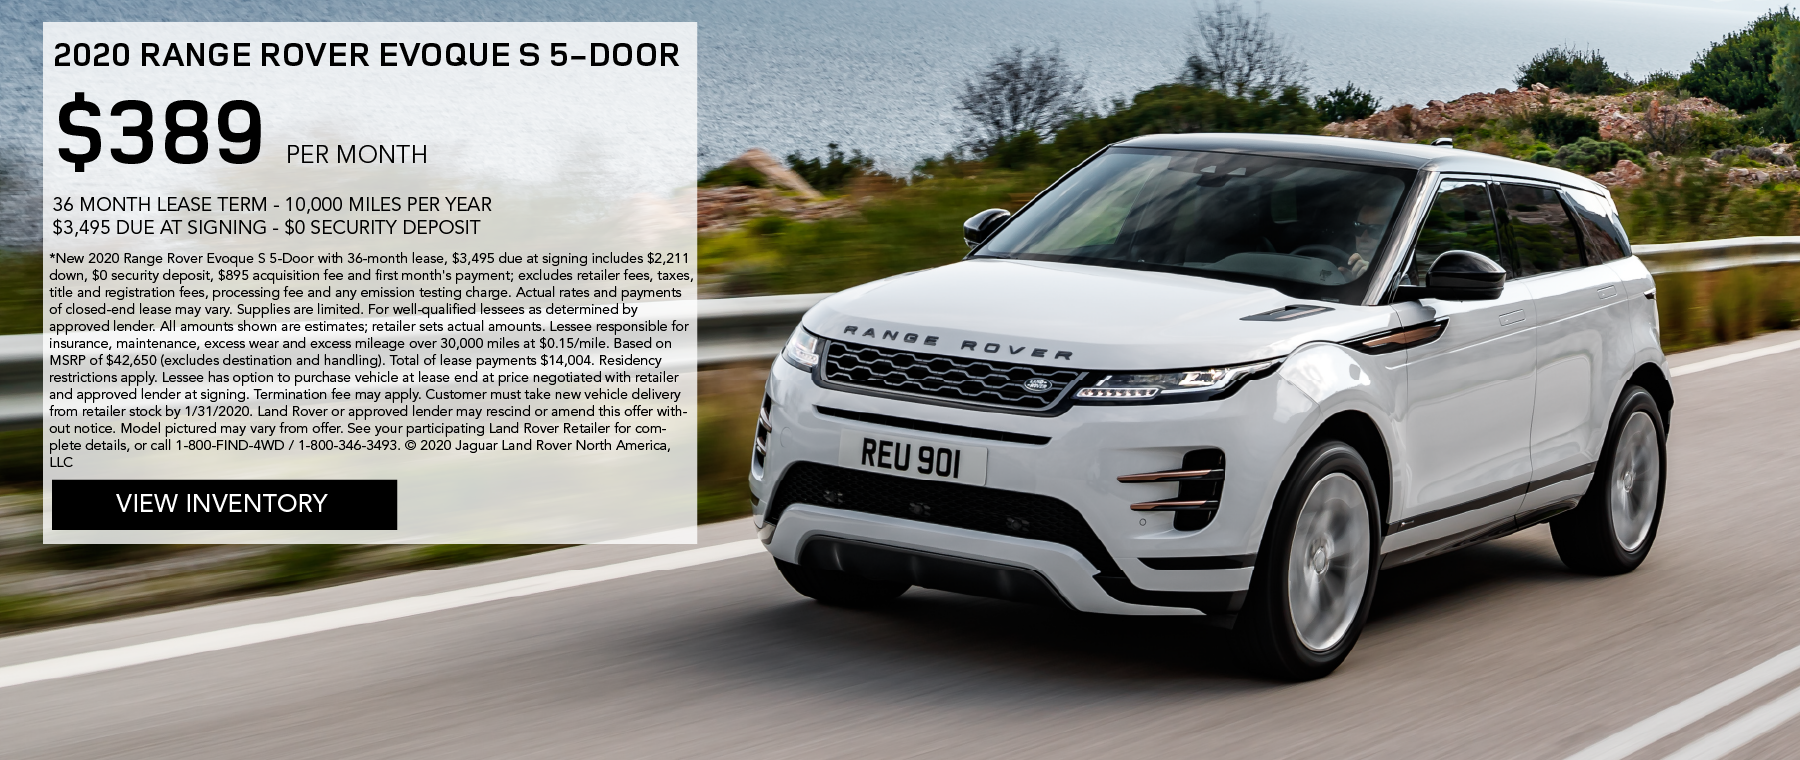 2020 RANGE ROVER EVOQUE S 5-DOOR_$389 PER MONTH_$3,495 DUE AT SIGNING_$0 SECURITY DEPOSIT_36 MONTH LEASE TERM_10,000 MILES PER YEAR_EXPIRES JANUARY 31, 2020_VIEW INVENTORY_GRAY RANGE ROVER EVOQUE S DRIVING DOWN ROAD NEAR GUARDRAIL AND LAKE